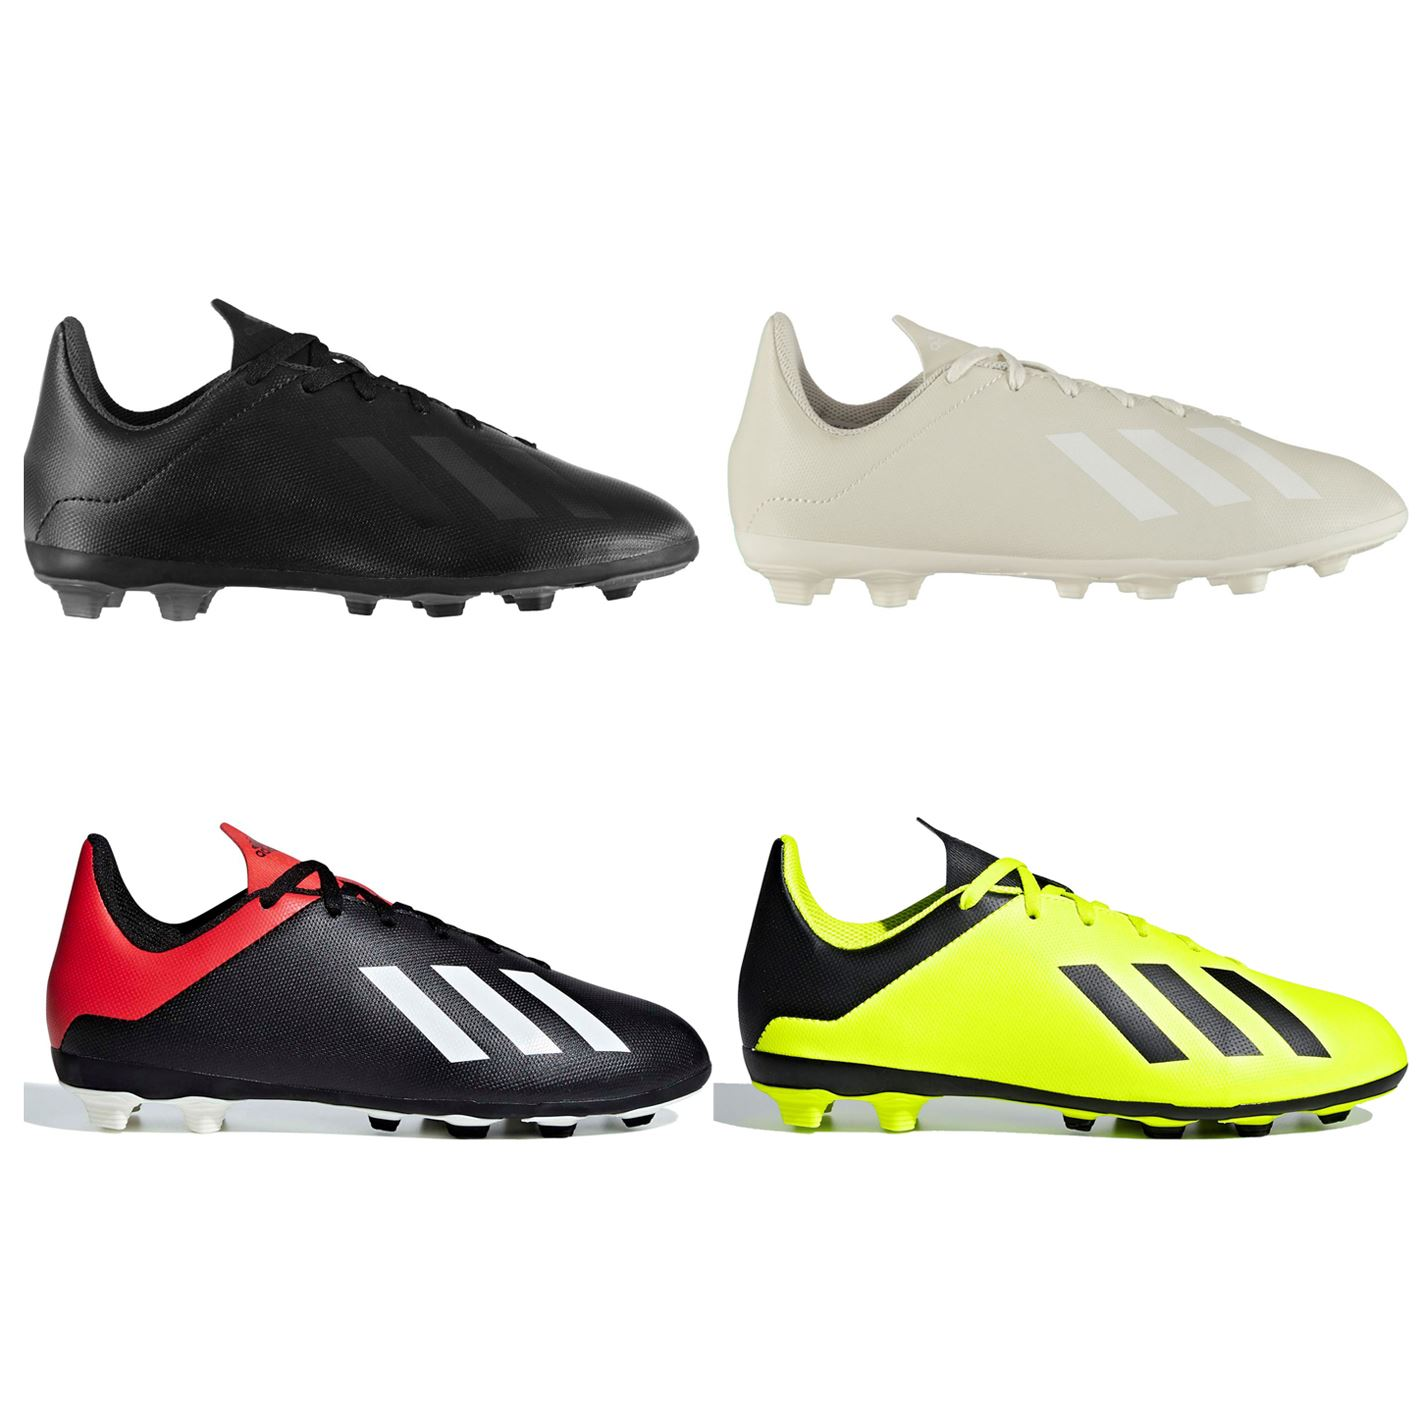 b26651a1b ... adidas X 18.4 FG Firm Ground Football Boots Childs Soccer Shoes Cleats  ...